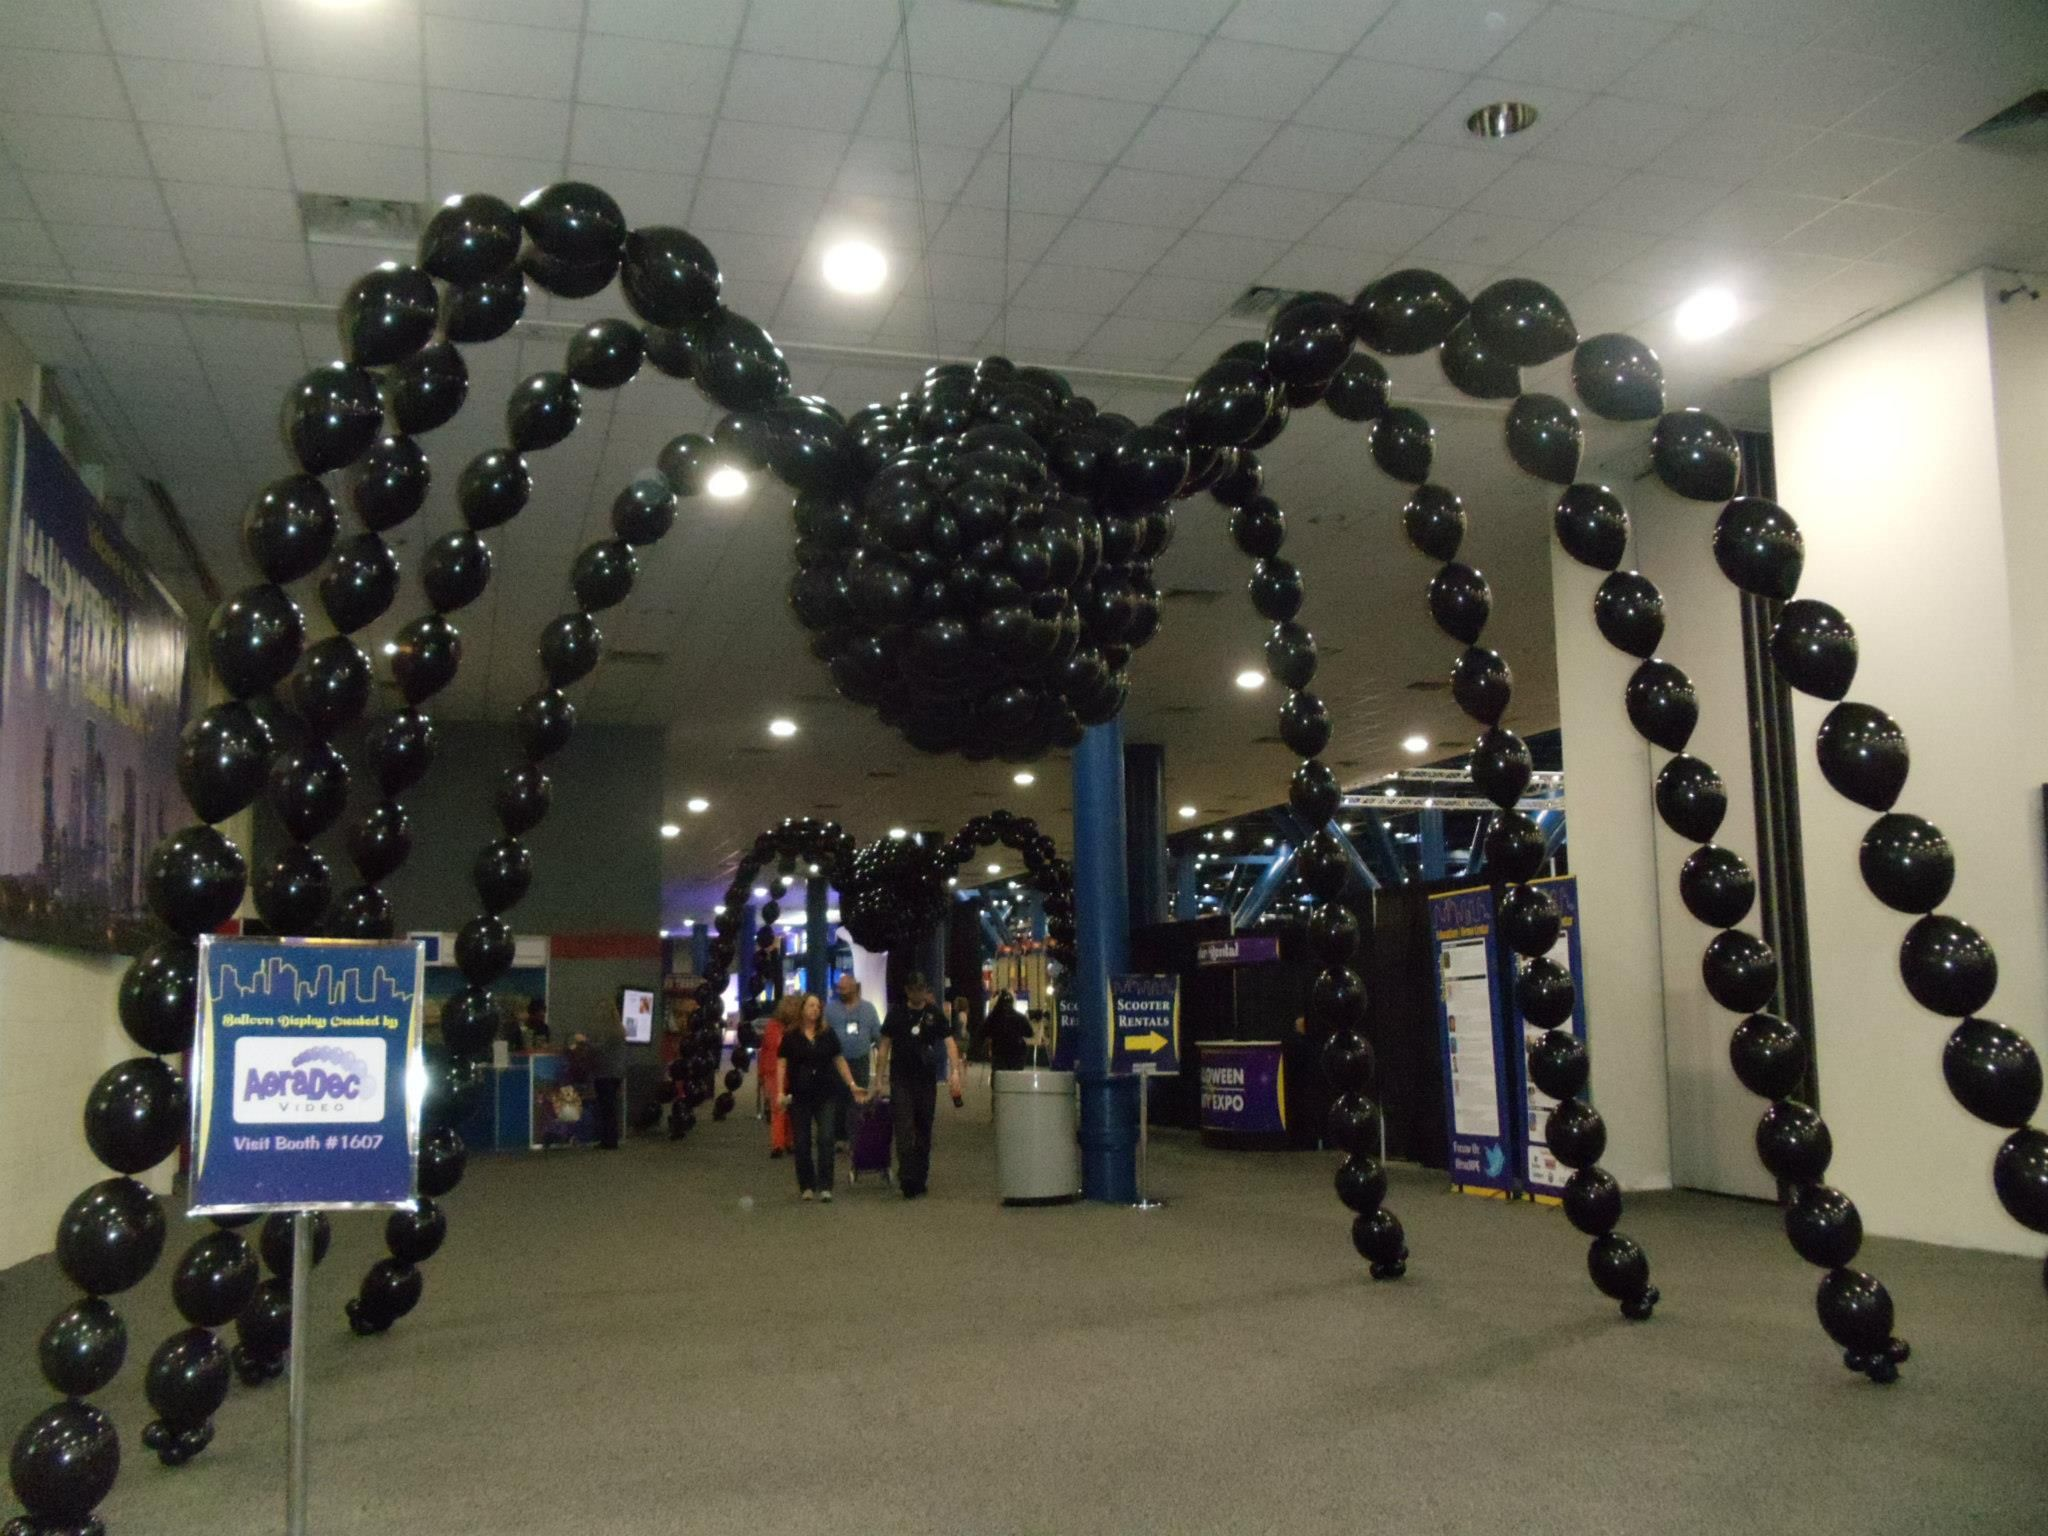 Halloween spider decoration - Giant Link O Loon Spider At Halloween Party Expo 2013 By Steve